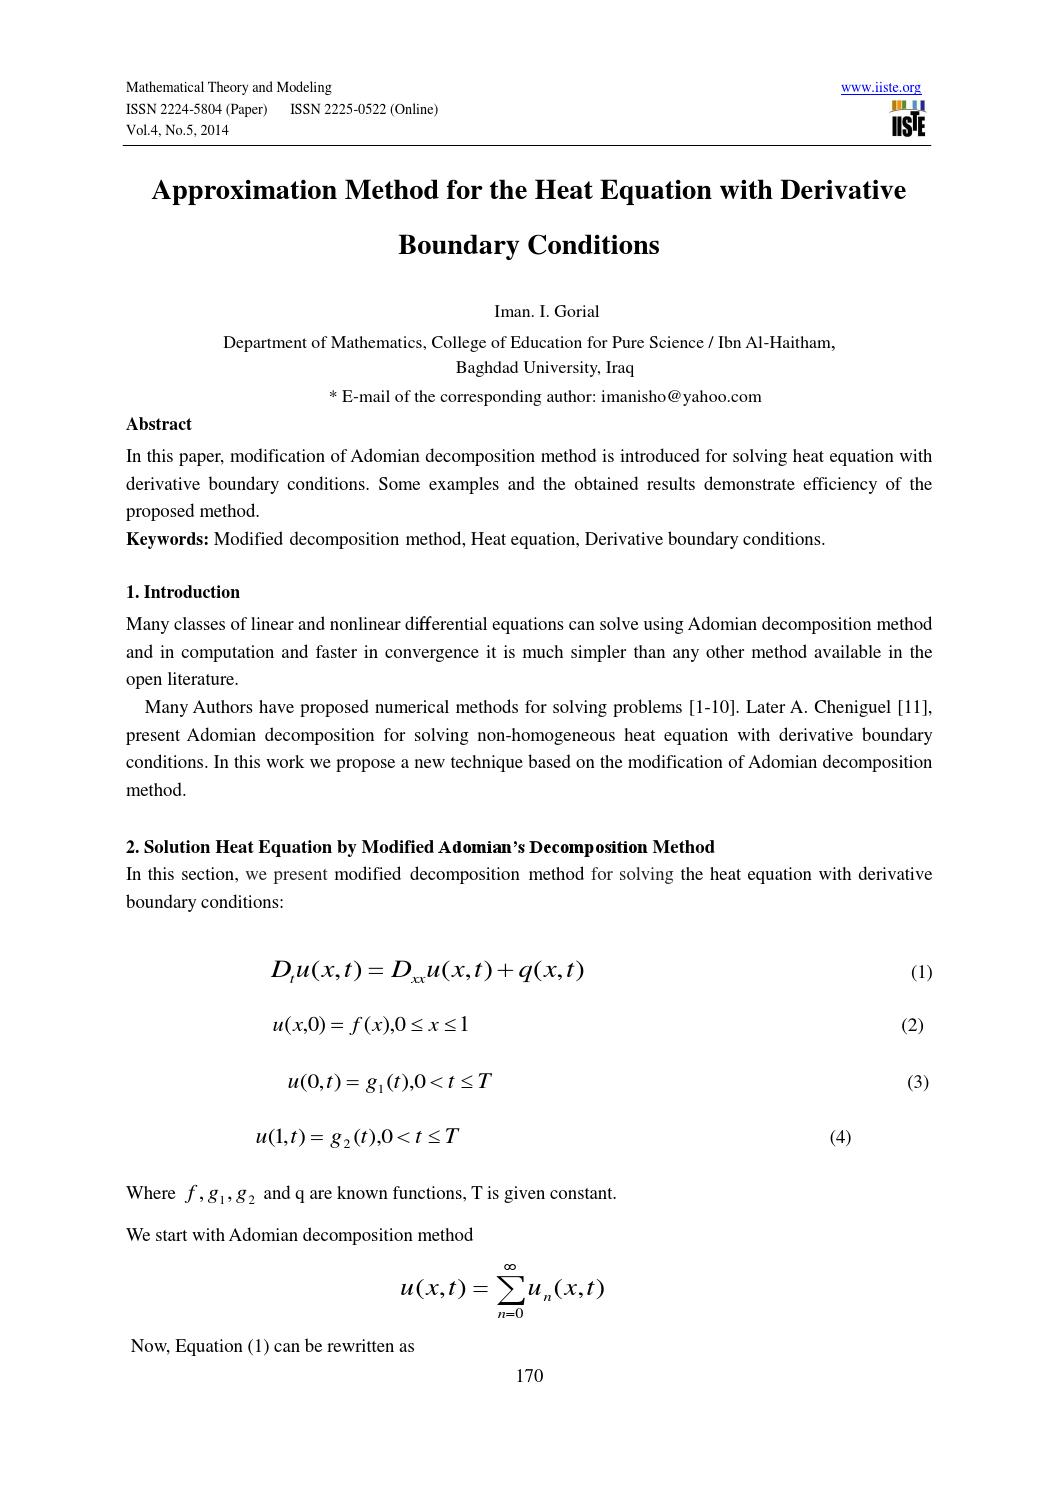 Approximation method for the heat equation with derivative